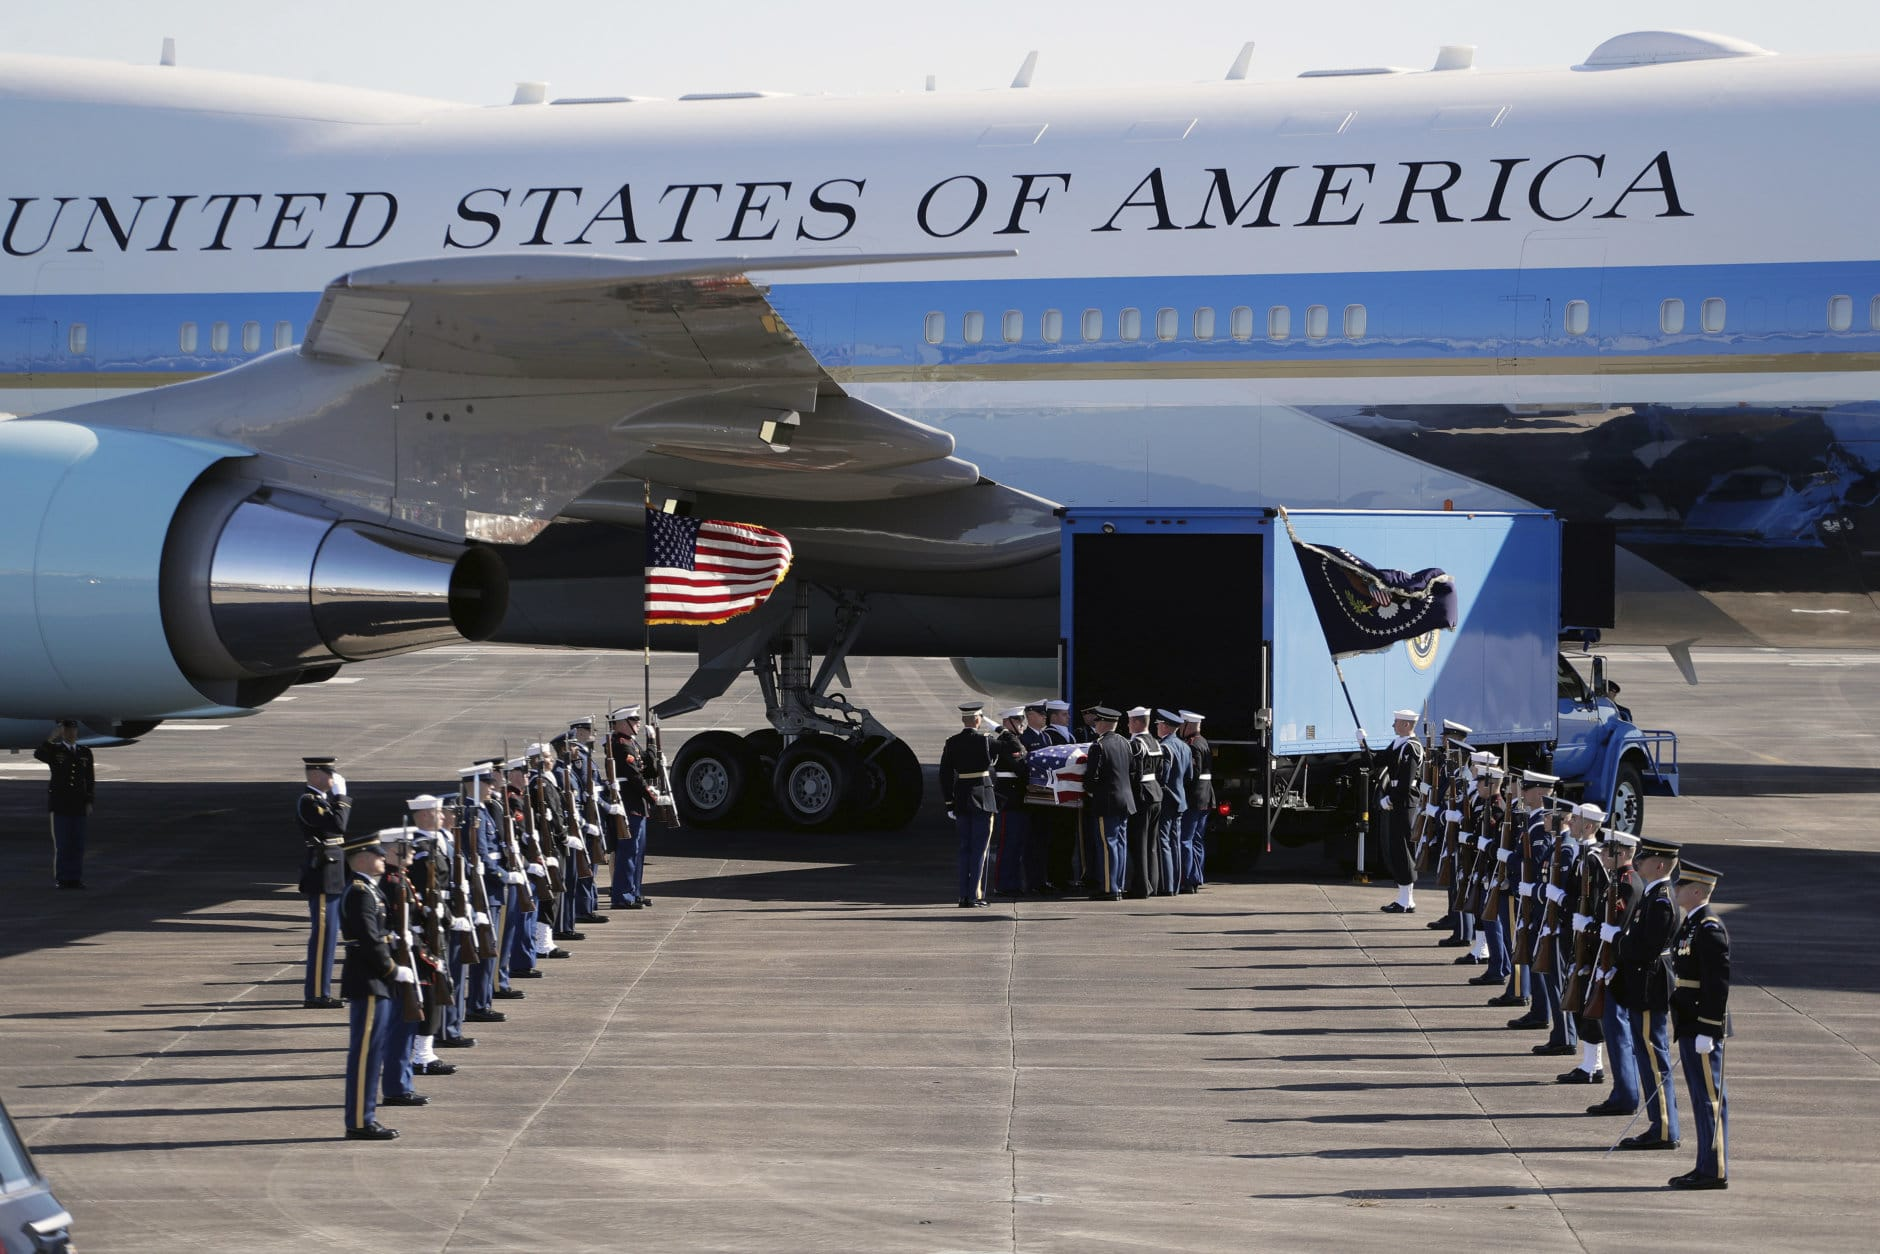 Members of the military carry the casket to Special Air Mission 41 at Ellington Field during a departure ceremony for a state funeral for former President George H.W. Bush, Monday, Dec. 3, 2018, in Houston. (AP Photo/Eric Gay)